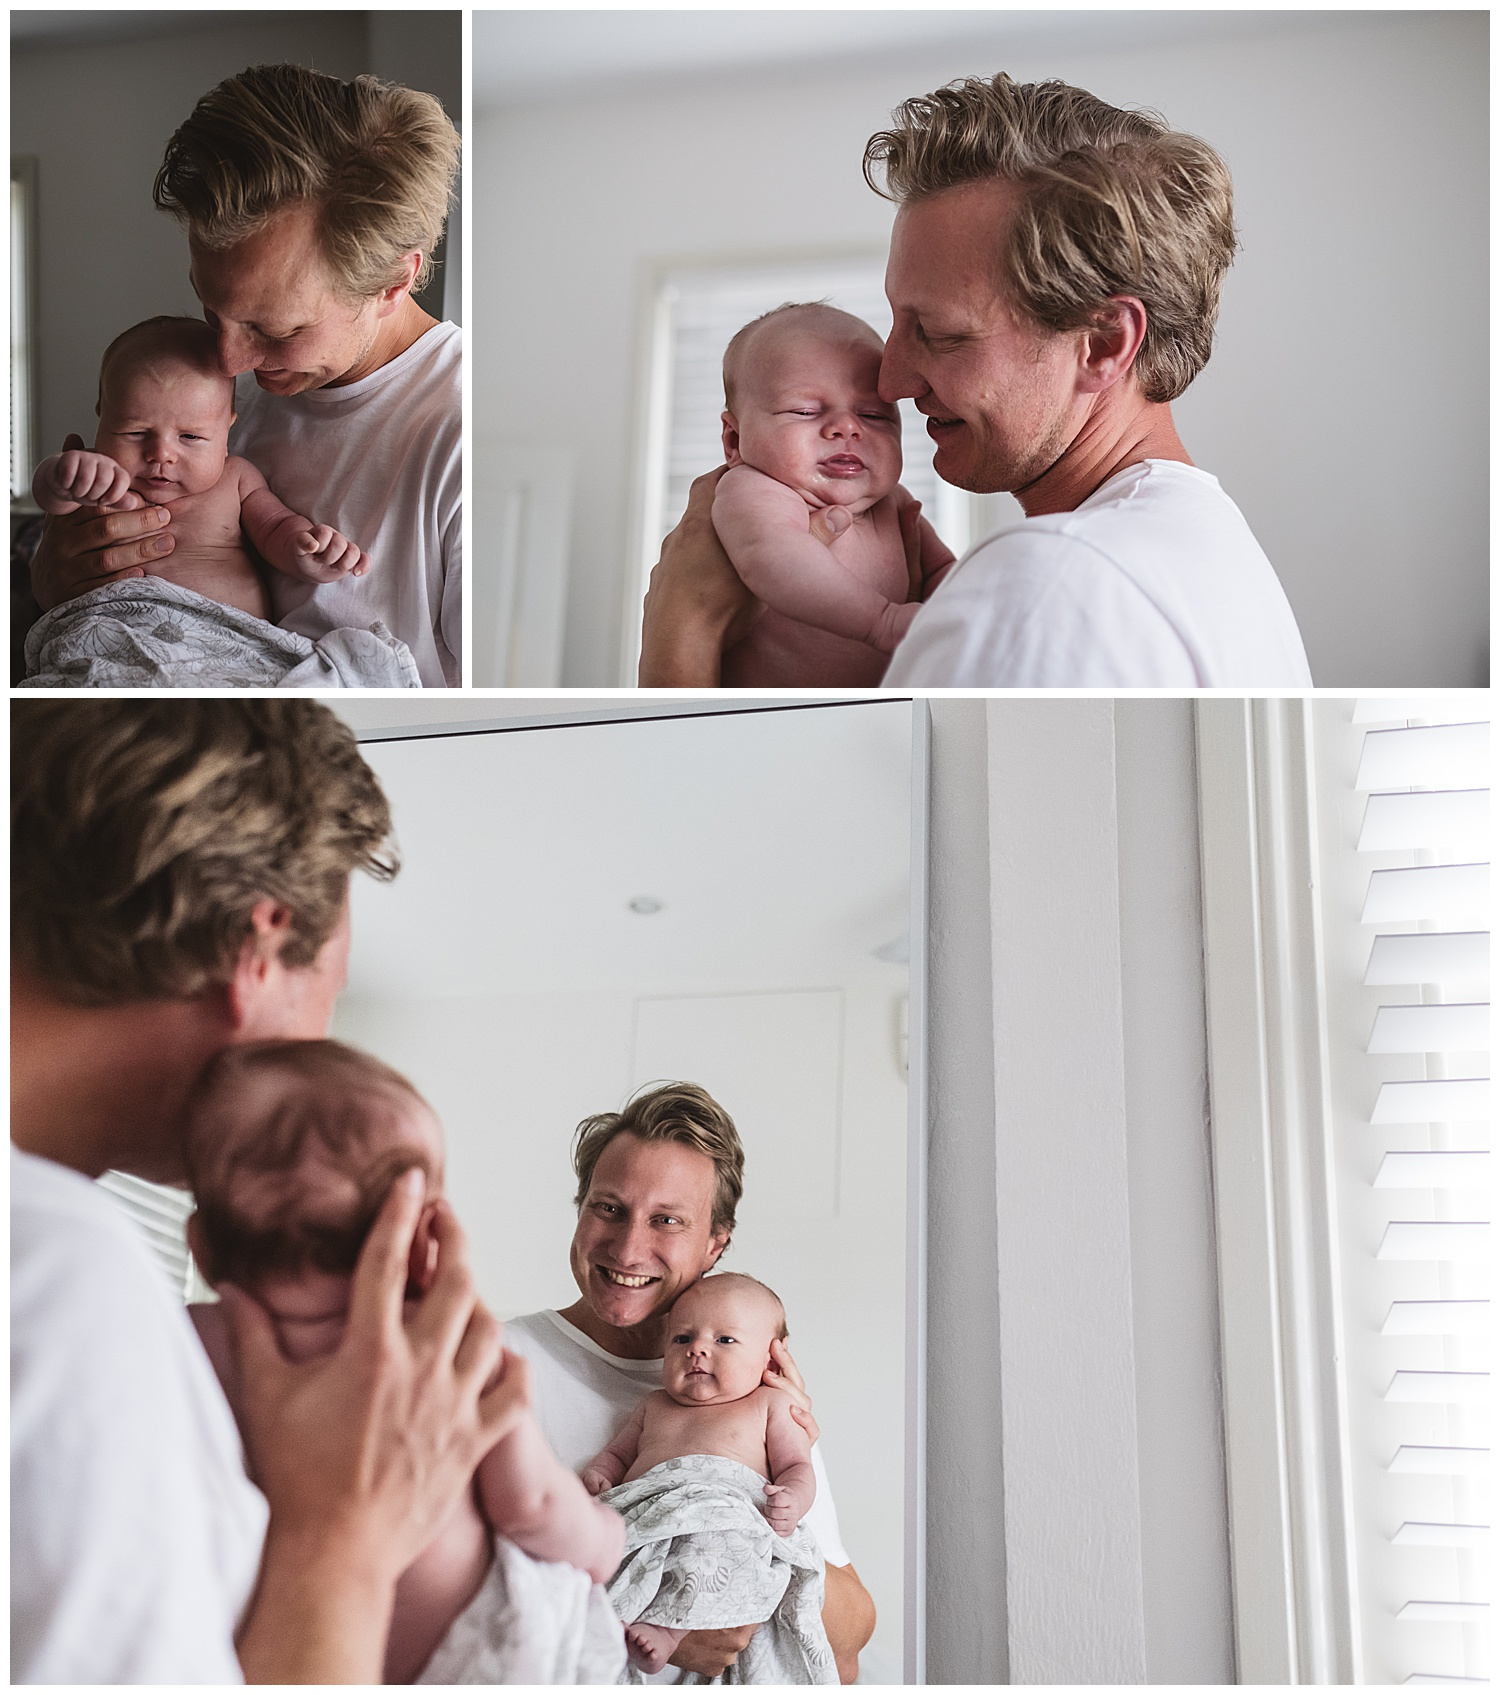 Abbotsford newborn and family lifestyle photography, natural emotions and natural light